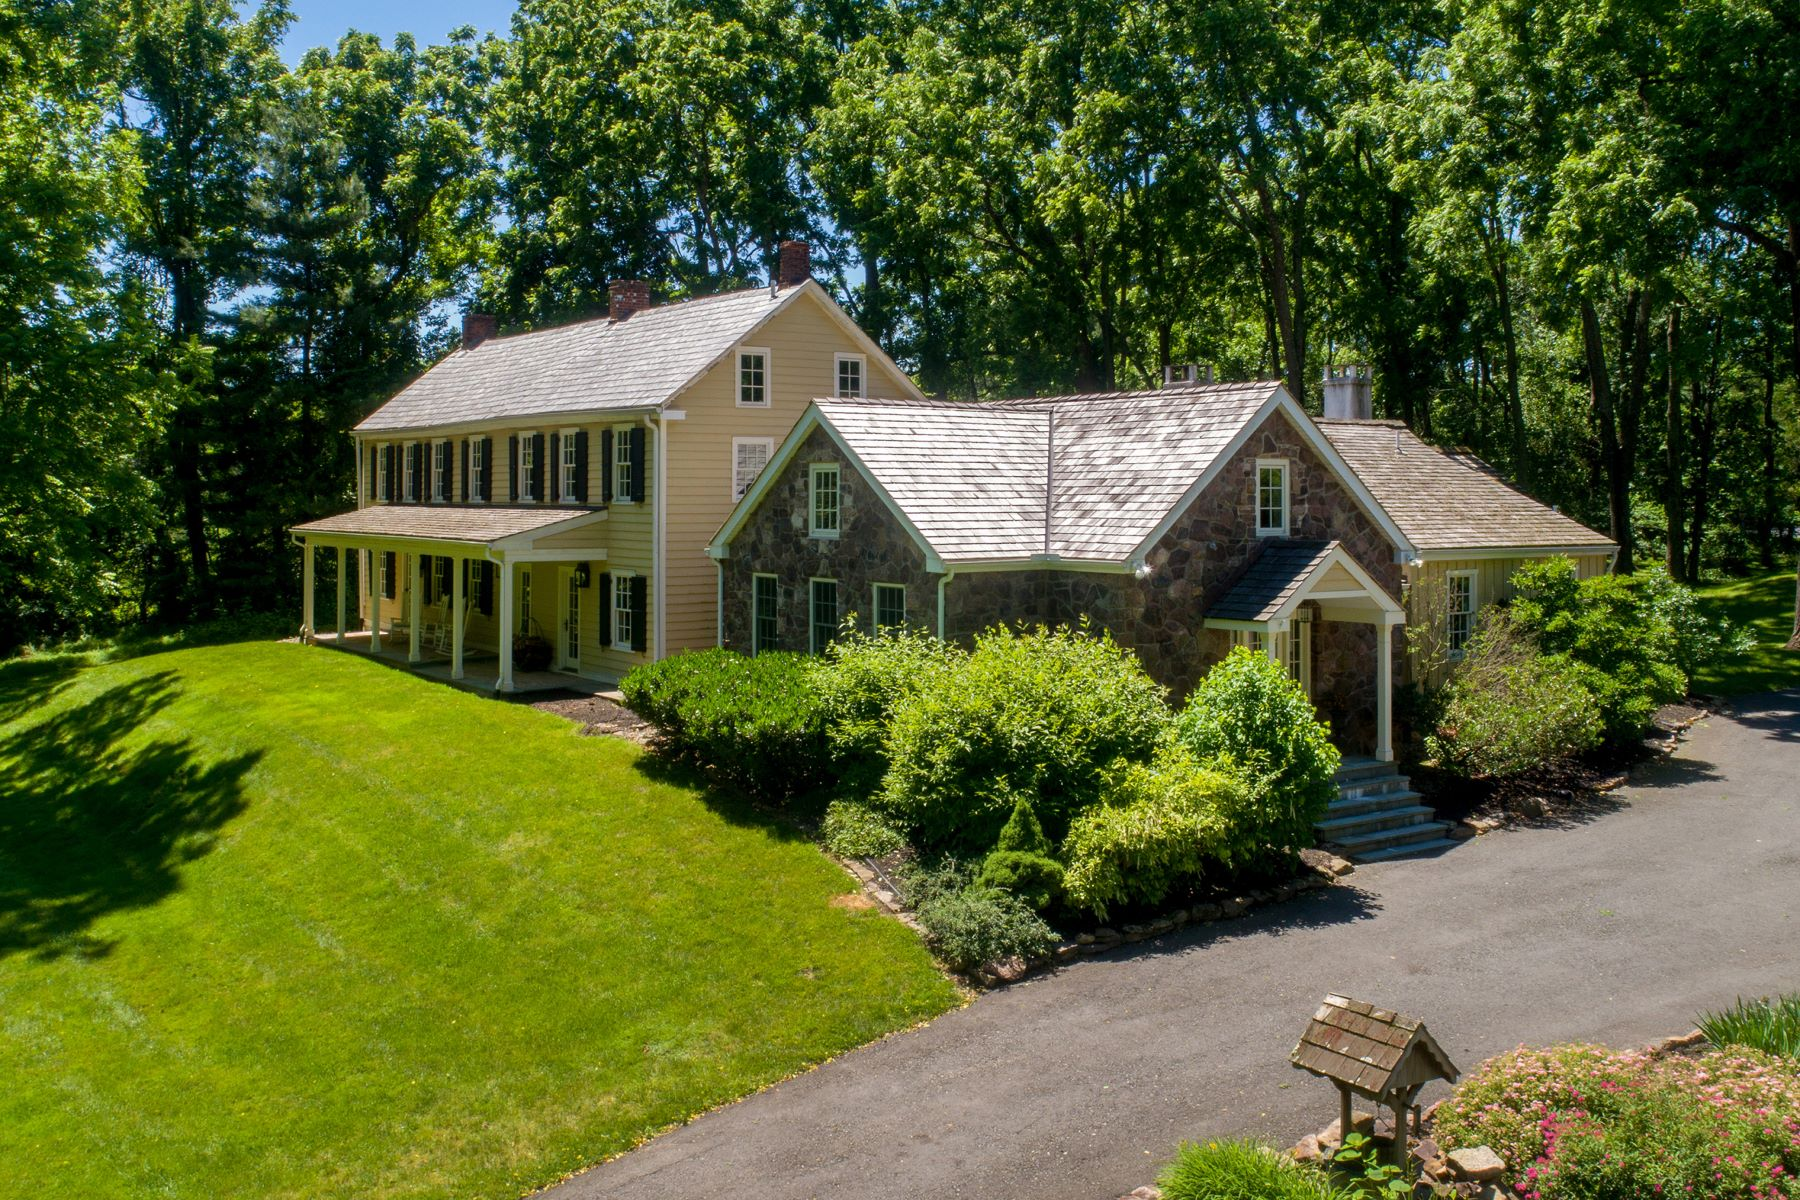 Single Family Homes for Sale at 5955 SAWMILL RD Solebury Township, Pennsylvania 18902 United States